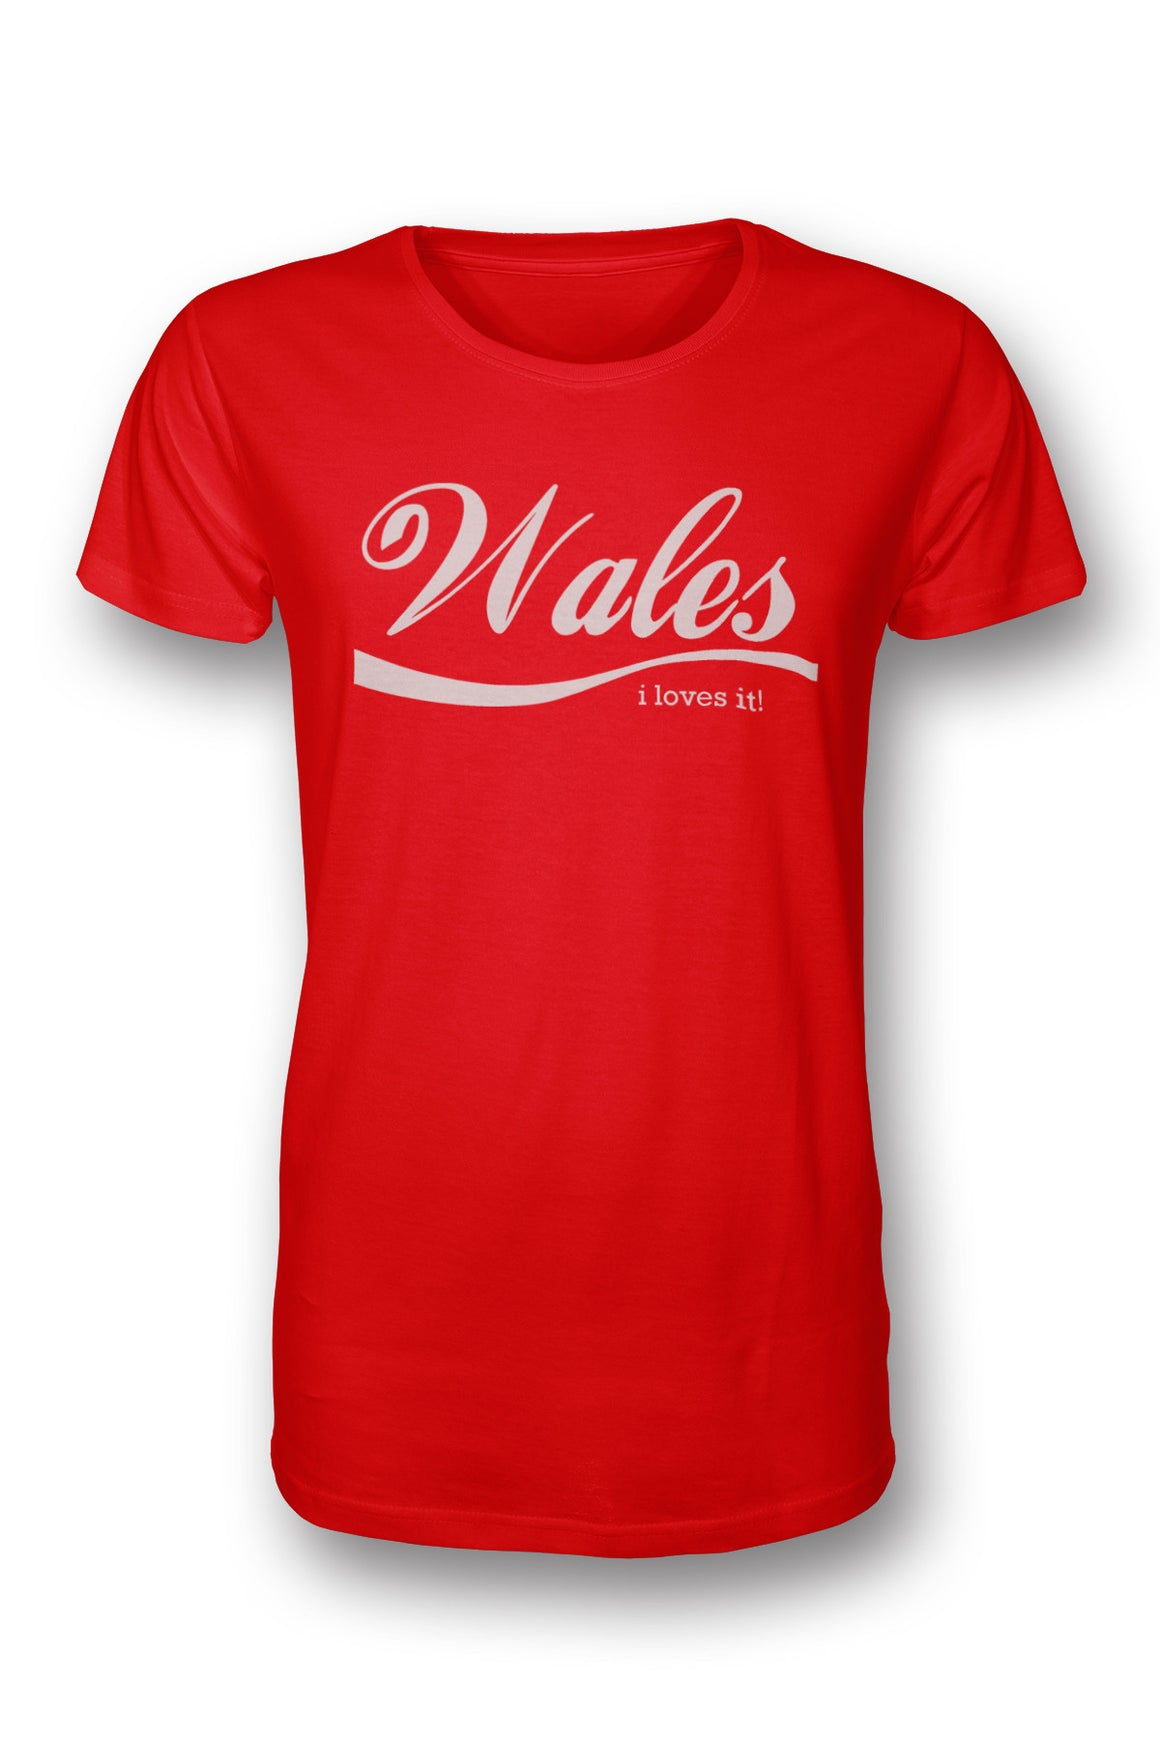 Wales - #It's well Lush - Women's T-Shirt